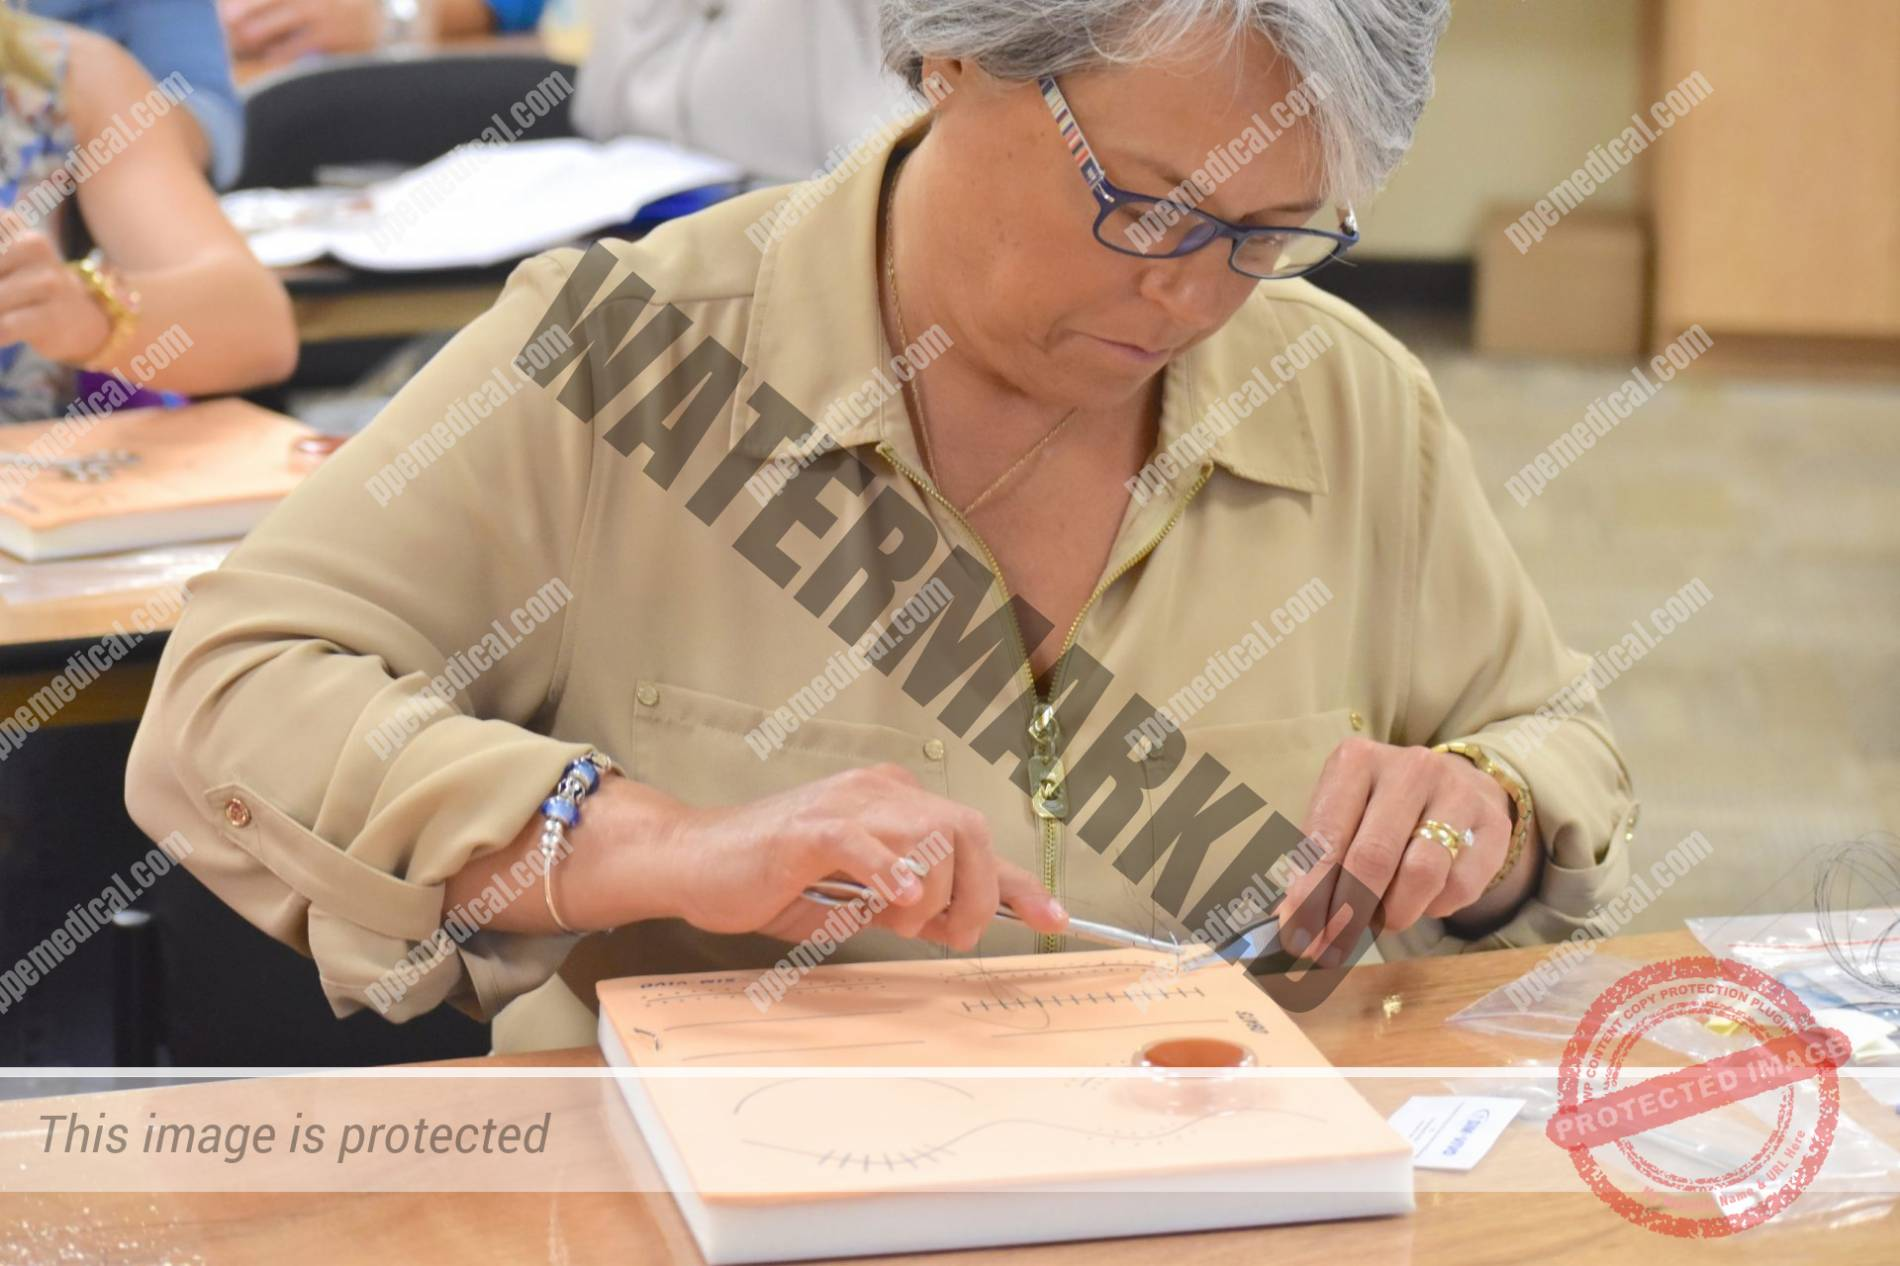 PPE Medical Student Works on Suturing Exercise